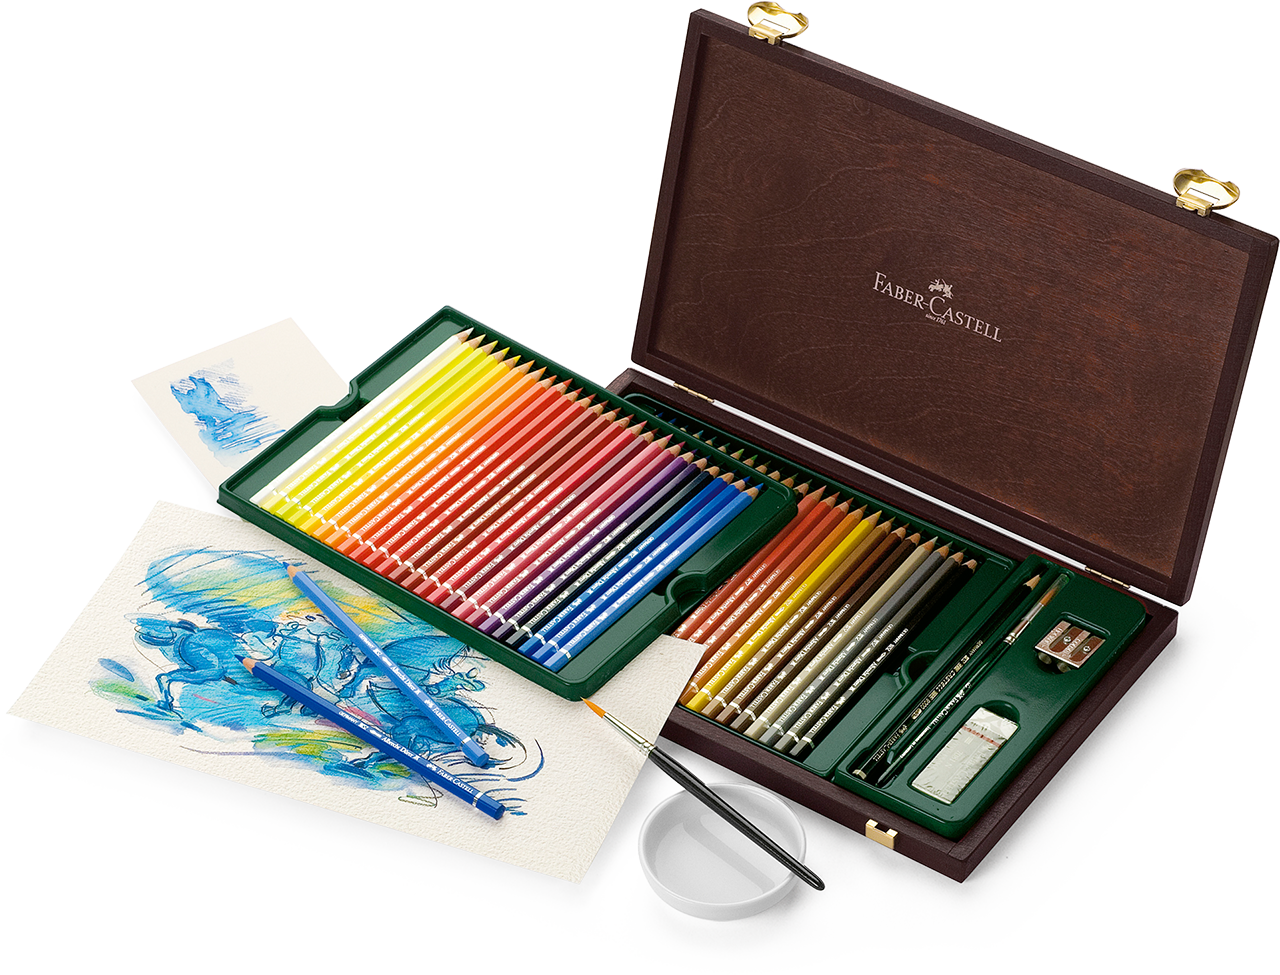 48 Watercolour Pencil Set in Wooden Case (inc. Eraser, Sharpener and Watercolour Brush)